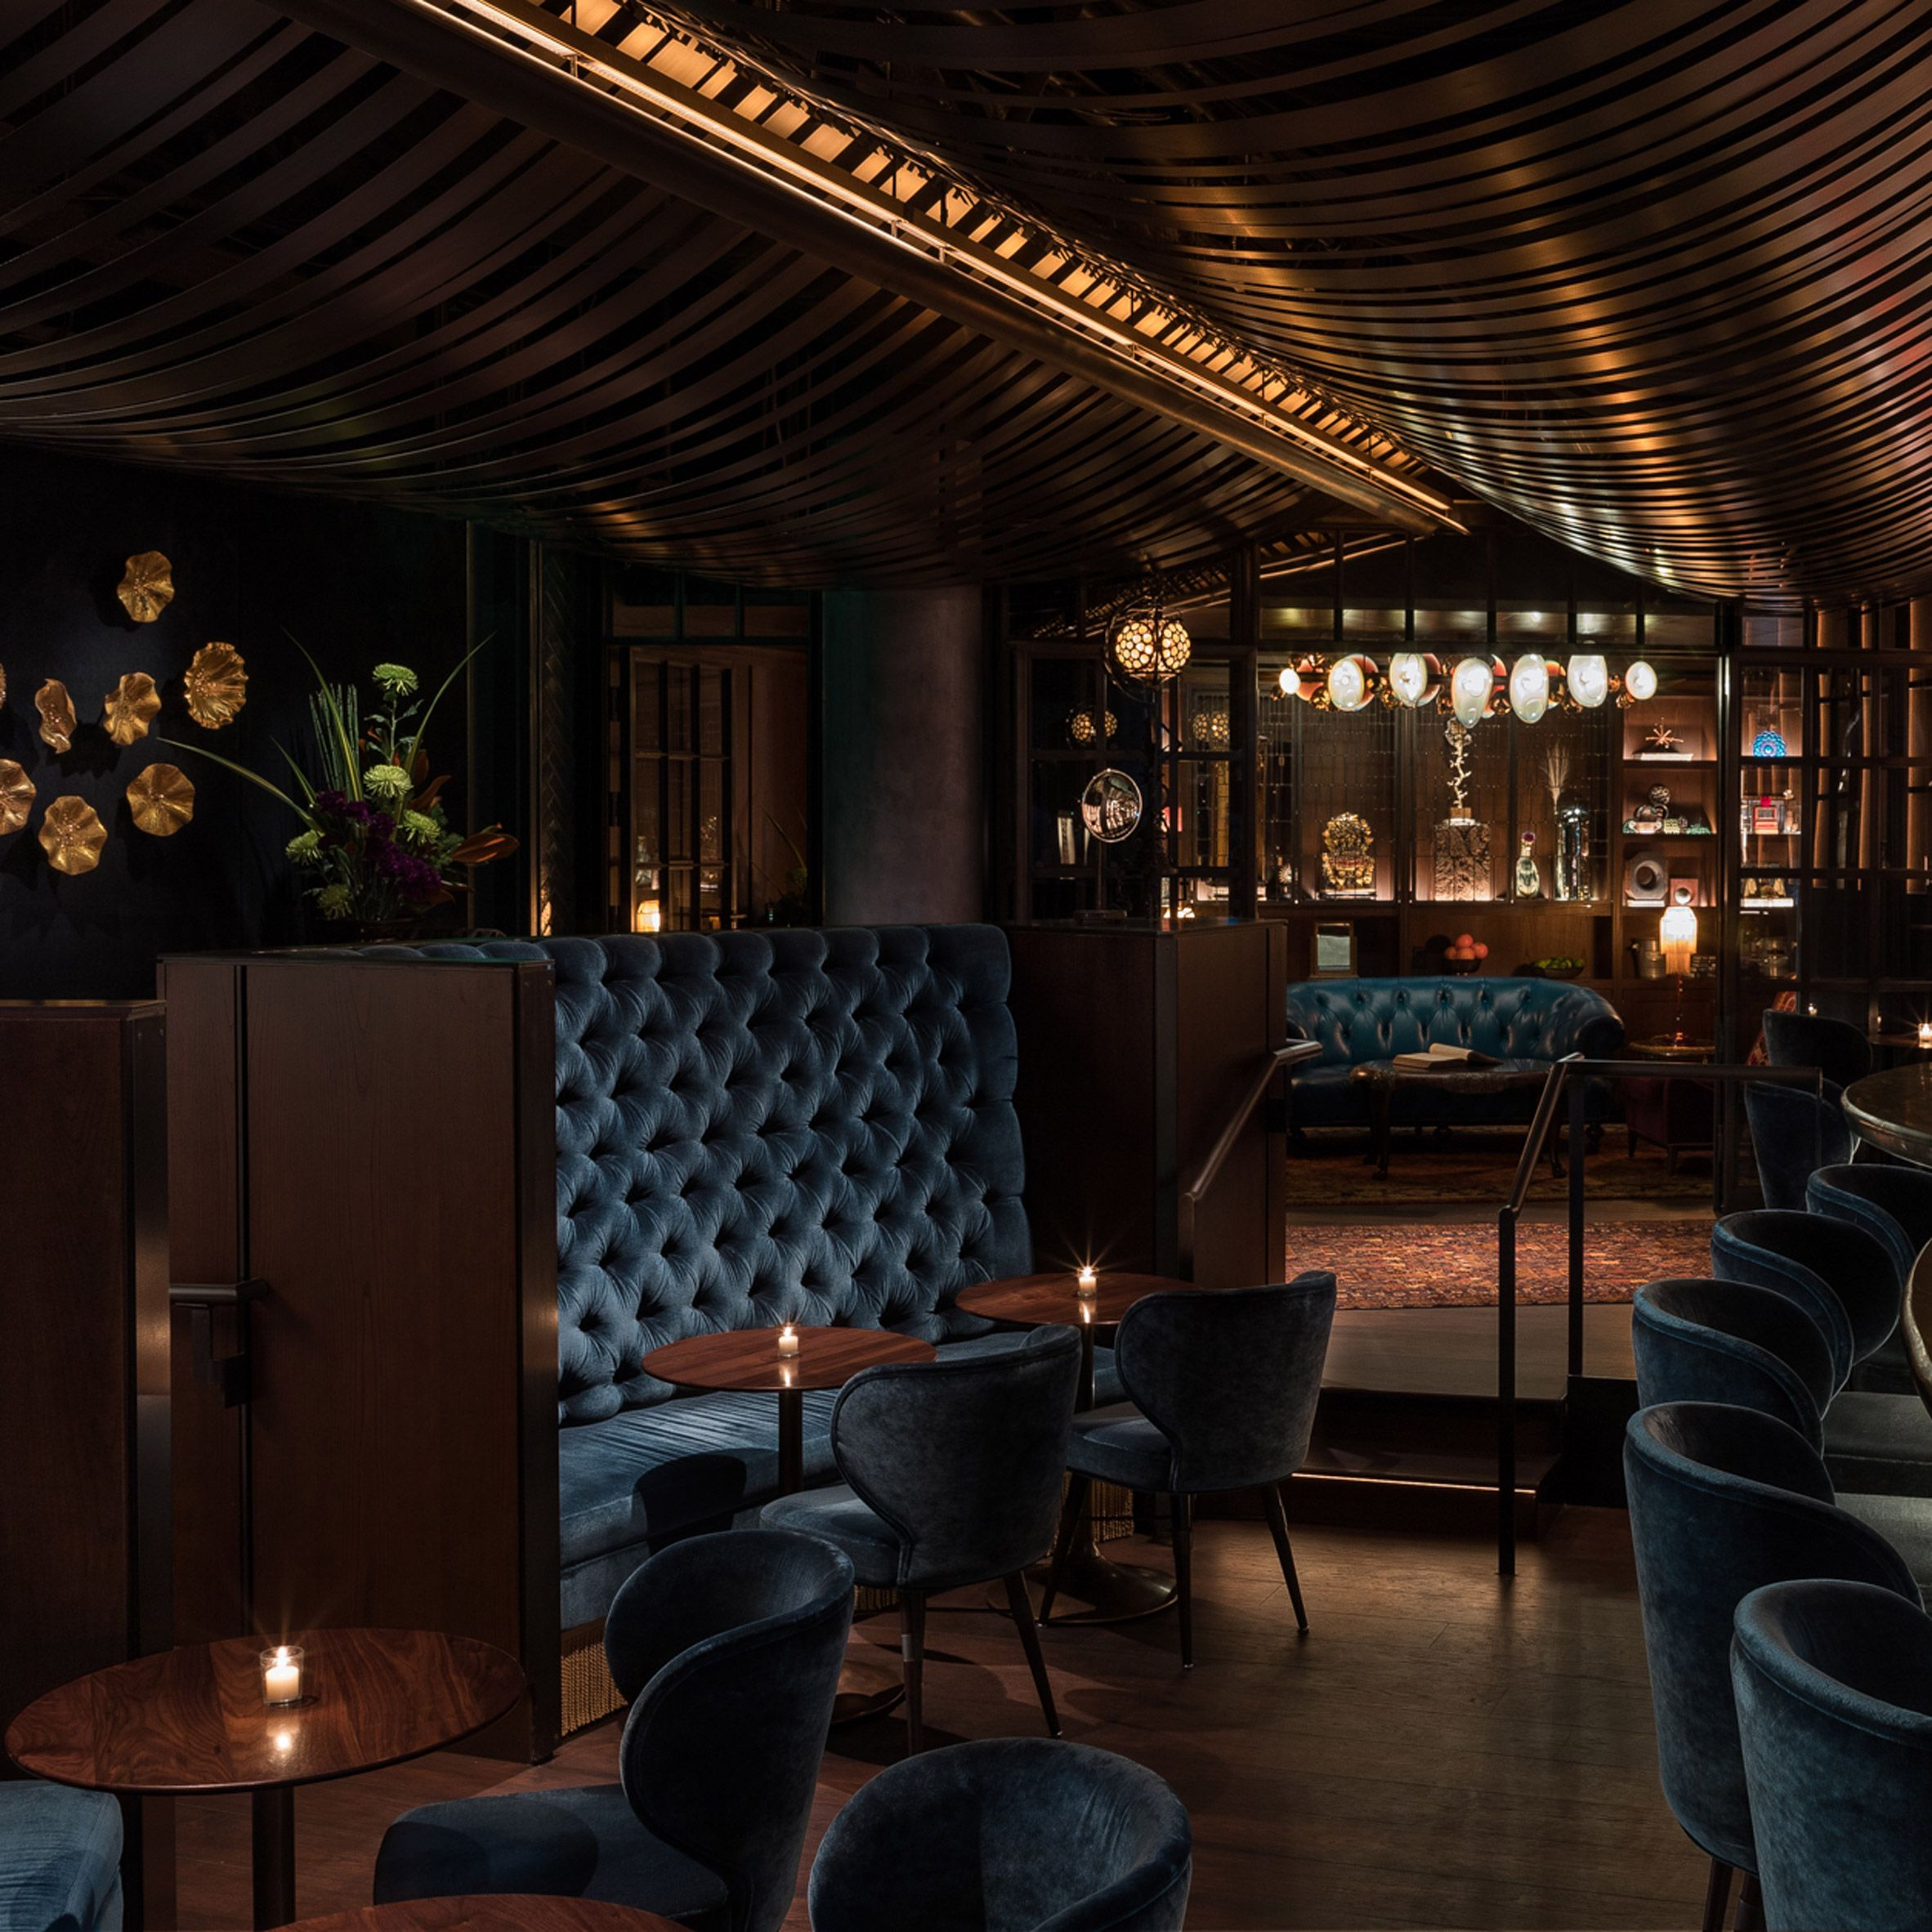 Graham Baba Designs Moody Deep Dive Speakeasy At Amazon S Seattle Headquarters Us Studio Graham Baba Architects Took Cues From Luxury Bar Architect Bar Design